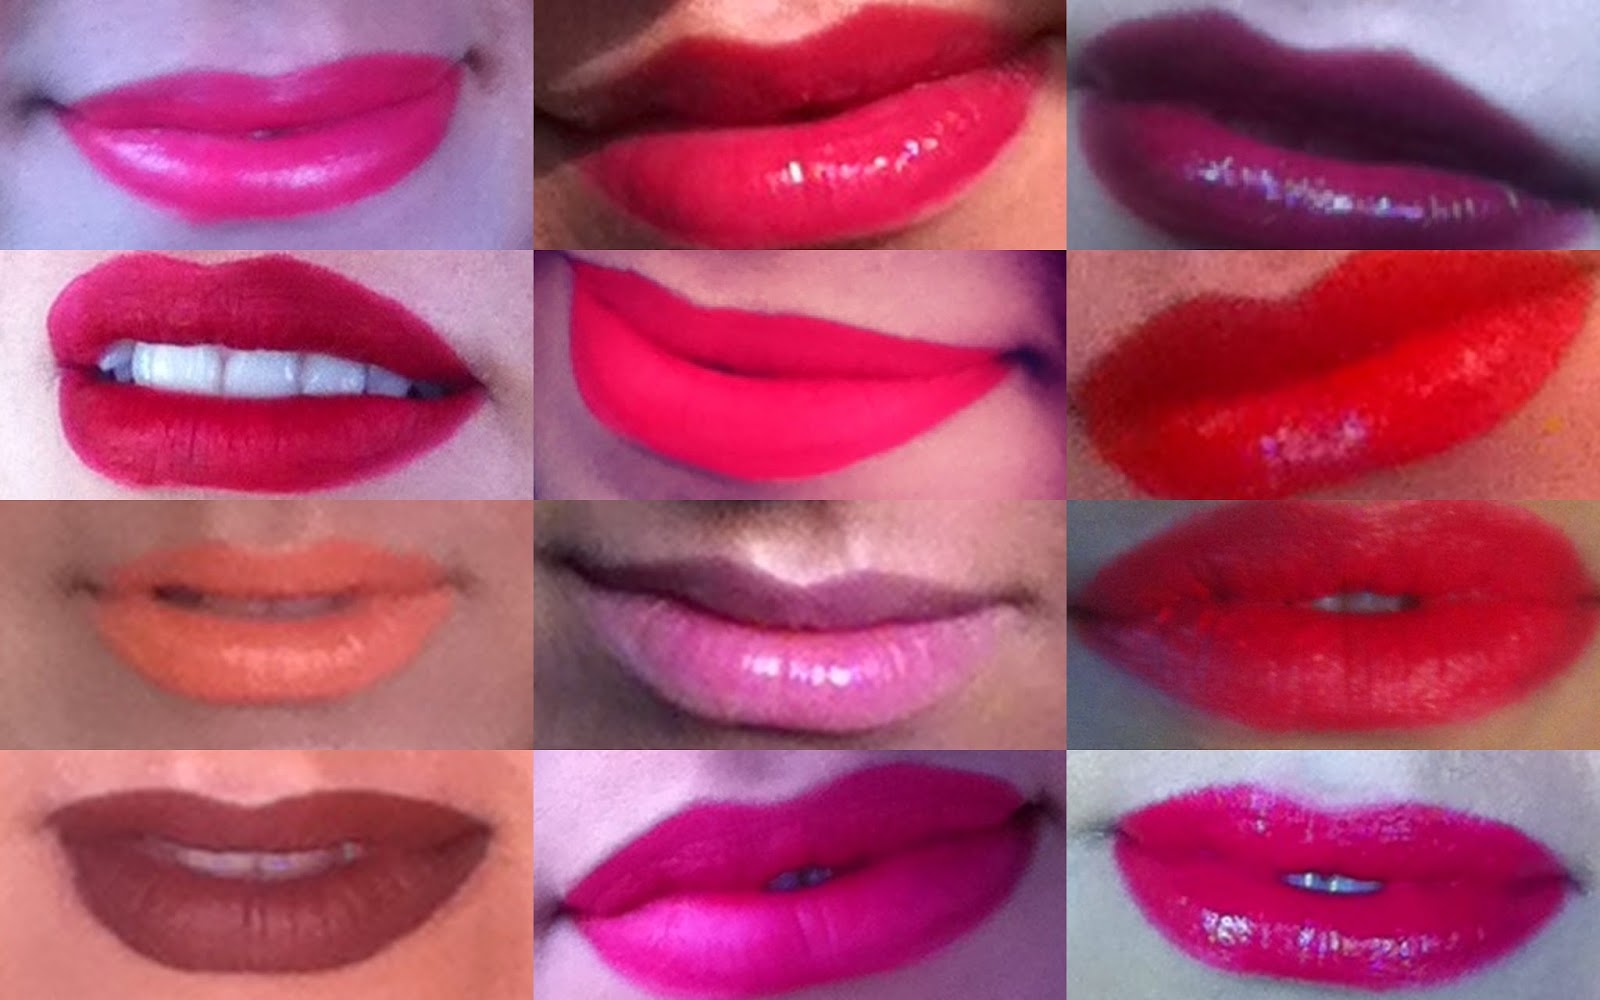 Exceptionnel I miei rossetti preferiti: TAG The Lip Product Addict - Véronique  WA81